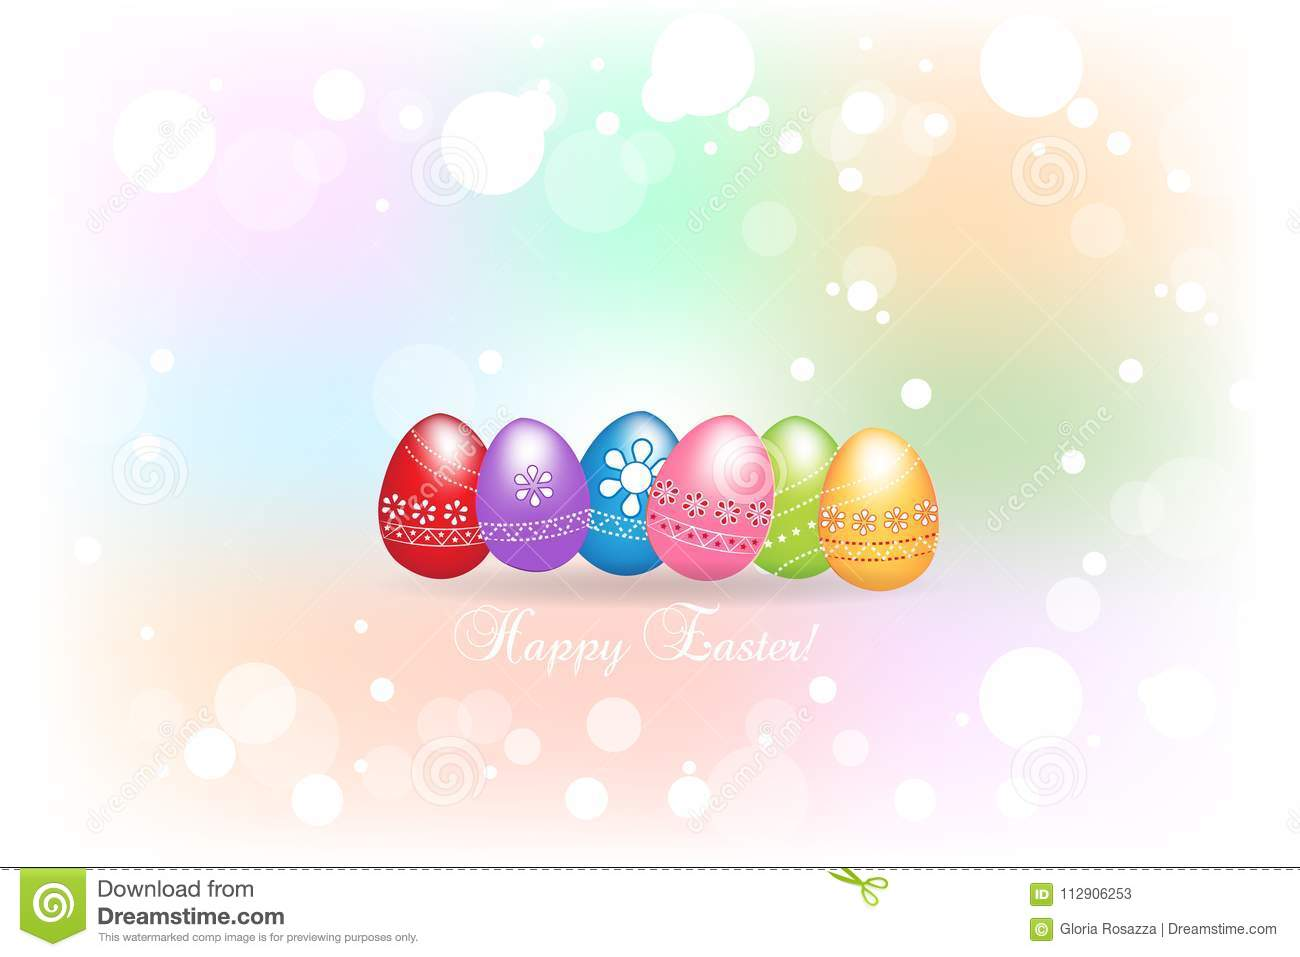 Happy easter greetings card with eggs colorful icon logo background download happy easter greetings card with eggs colorful icon logo background stock vector illustration m4hsunfo